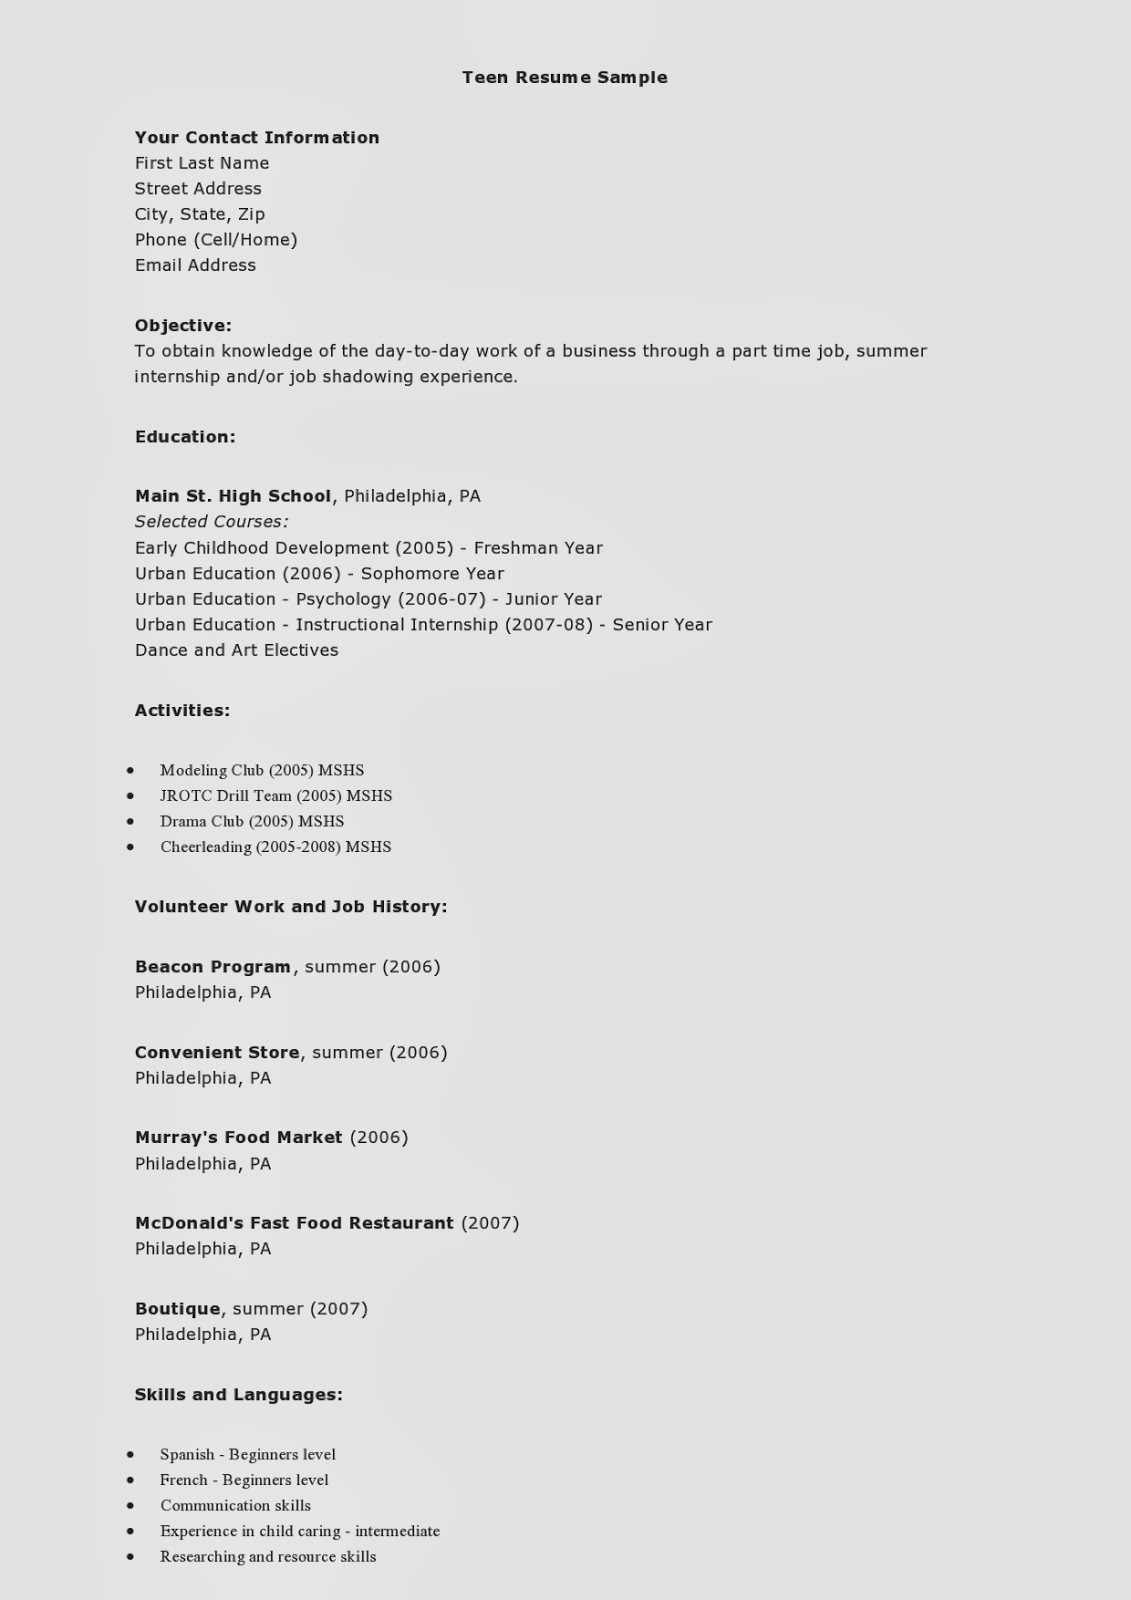 resume example monster resume monster resume templates resumemonsterdvrlists example resume and cover